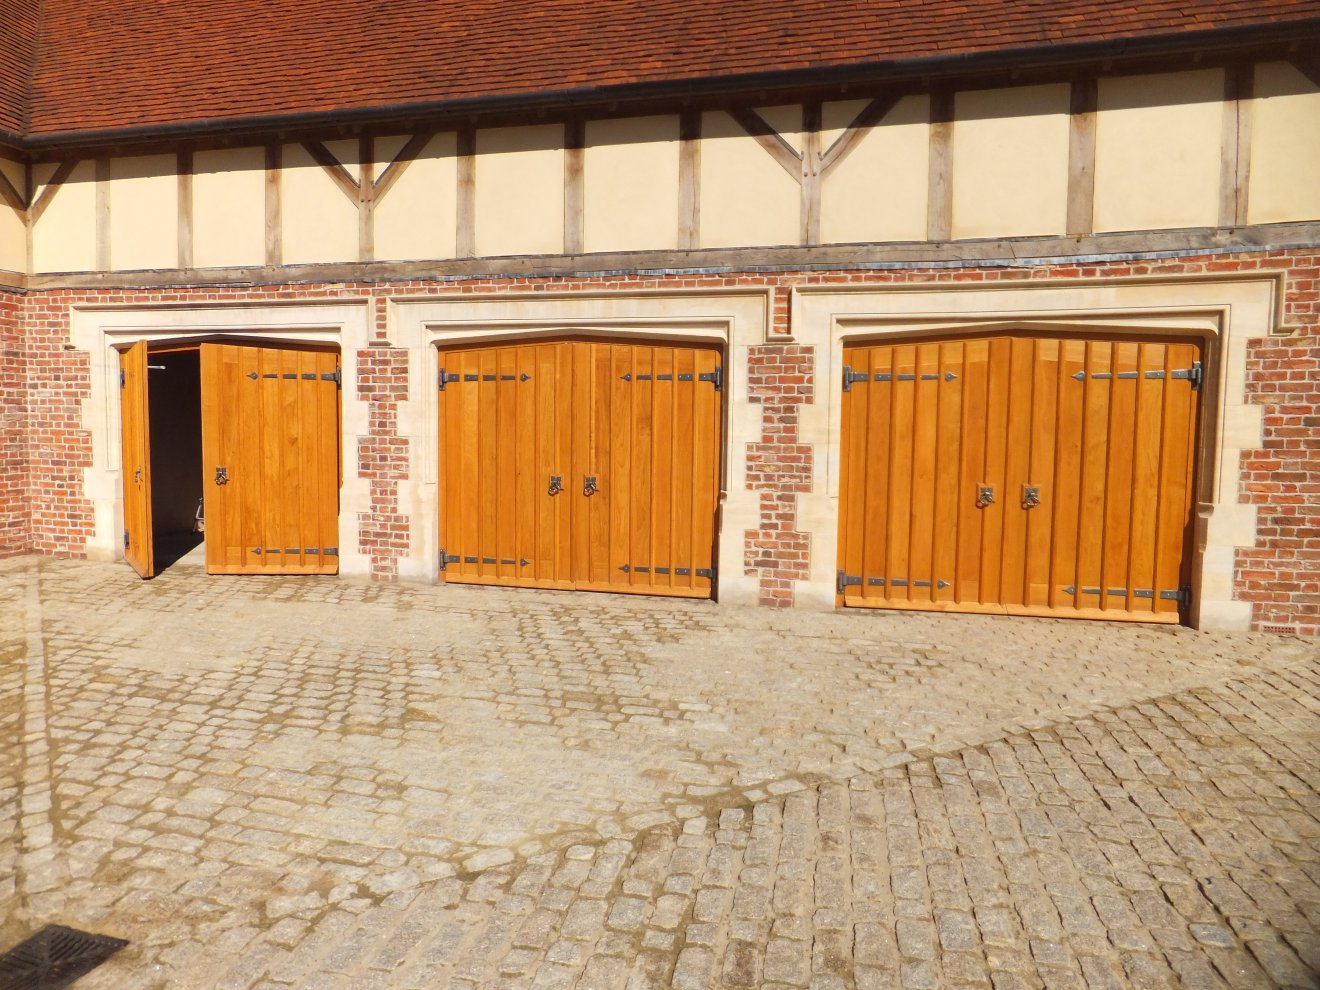 Gothic Style Garage Doors In Solid Oak Complete With Handmade Ironwork